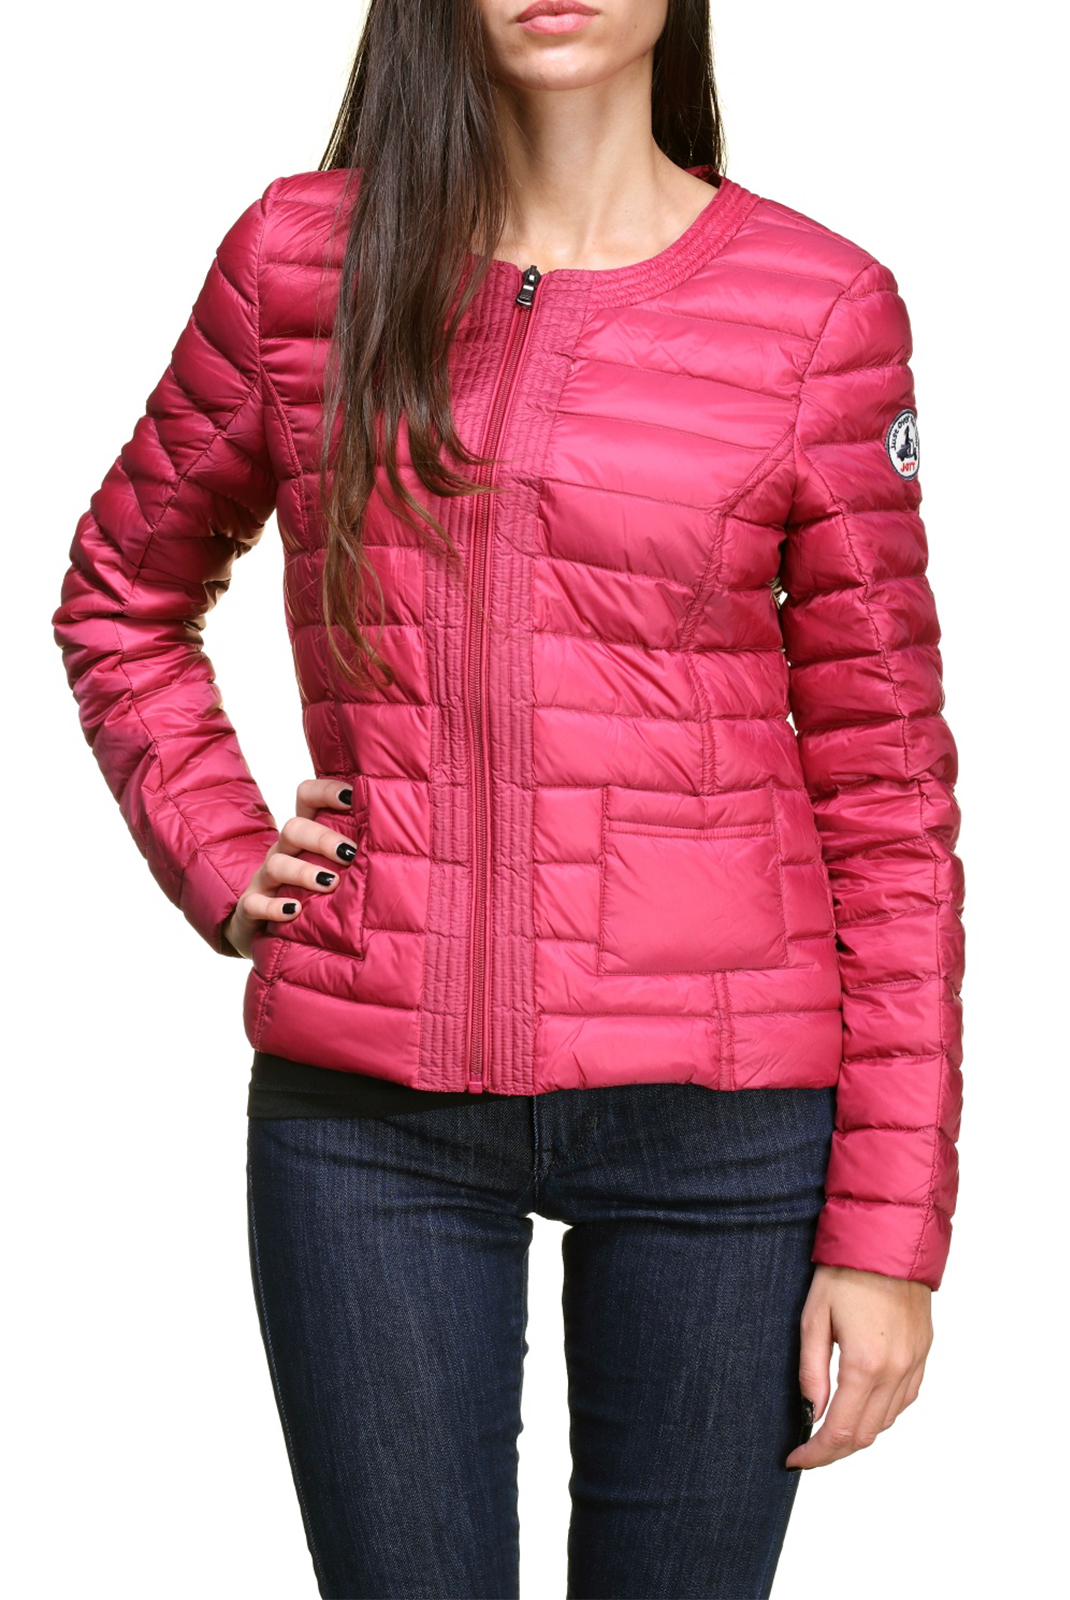 Blouson  Just over the top DOUDA 418 FRAMBOISE